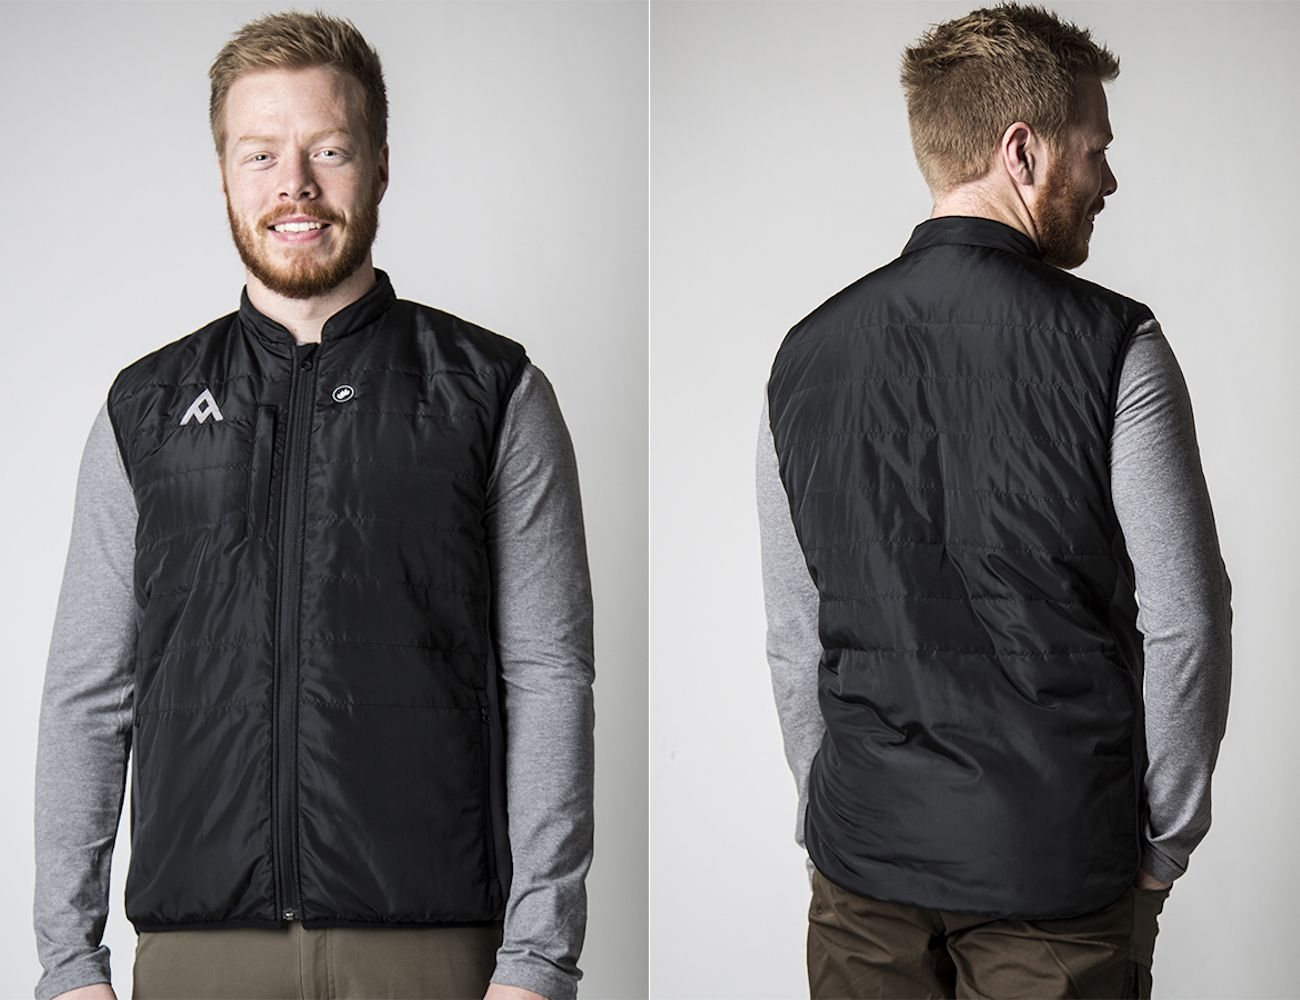 Heated Winter Apparel by The Heat Experience